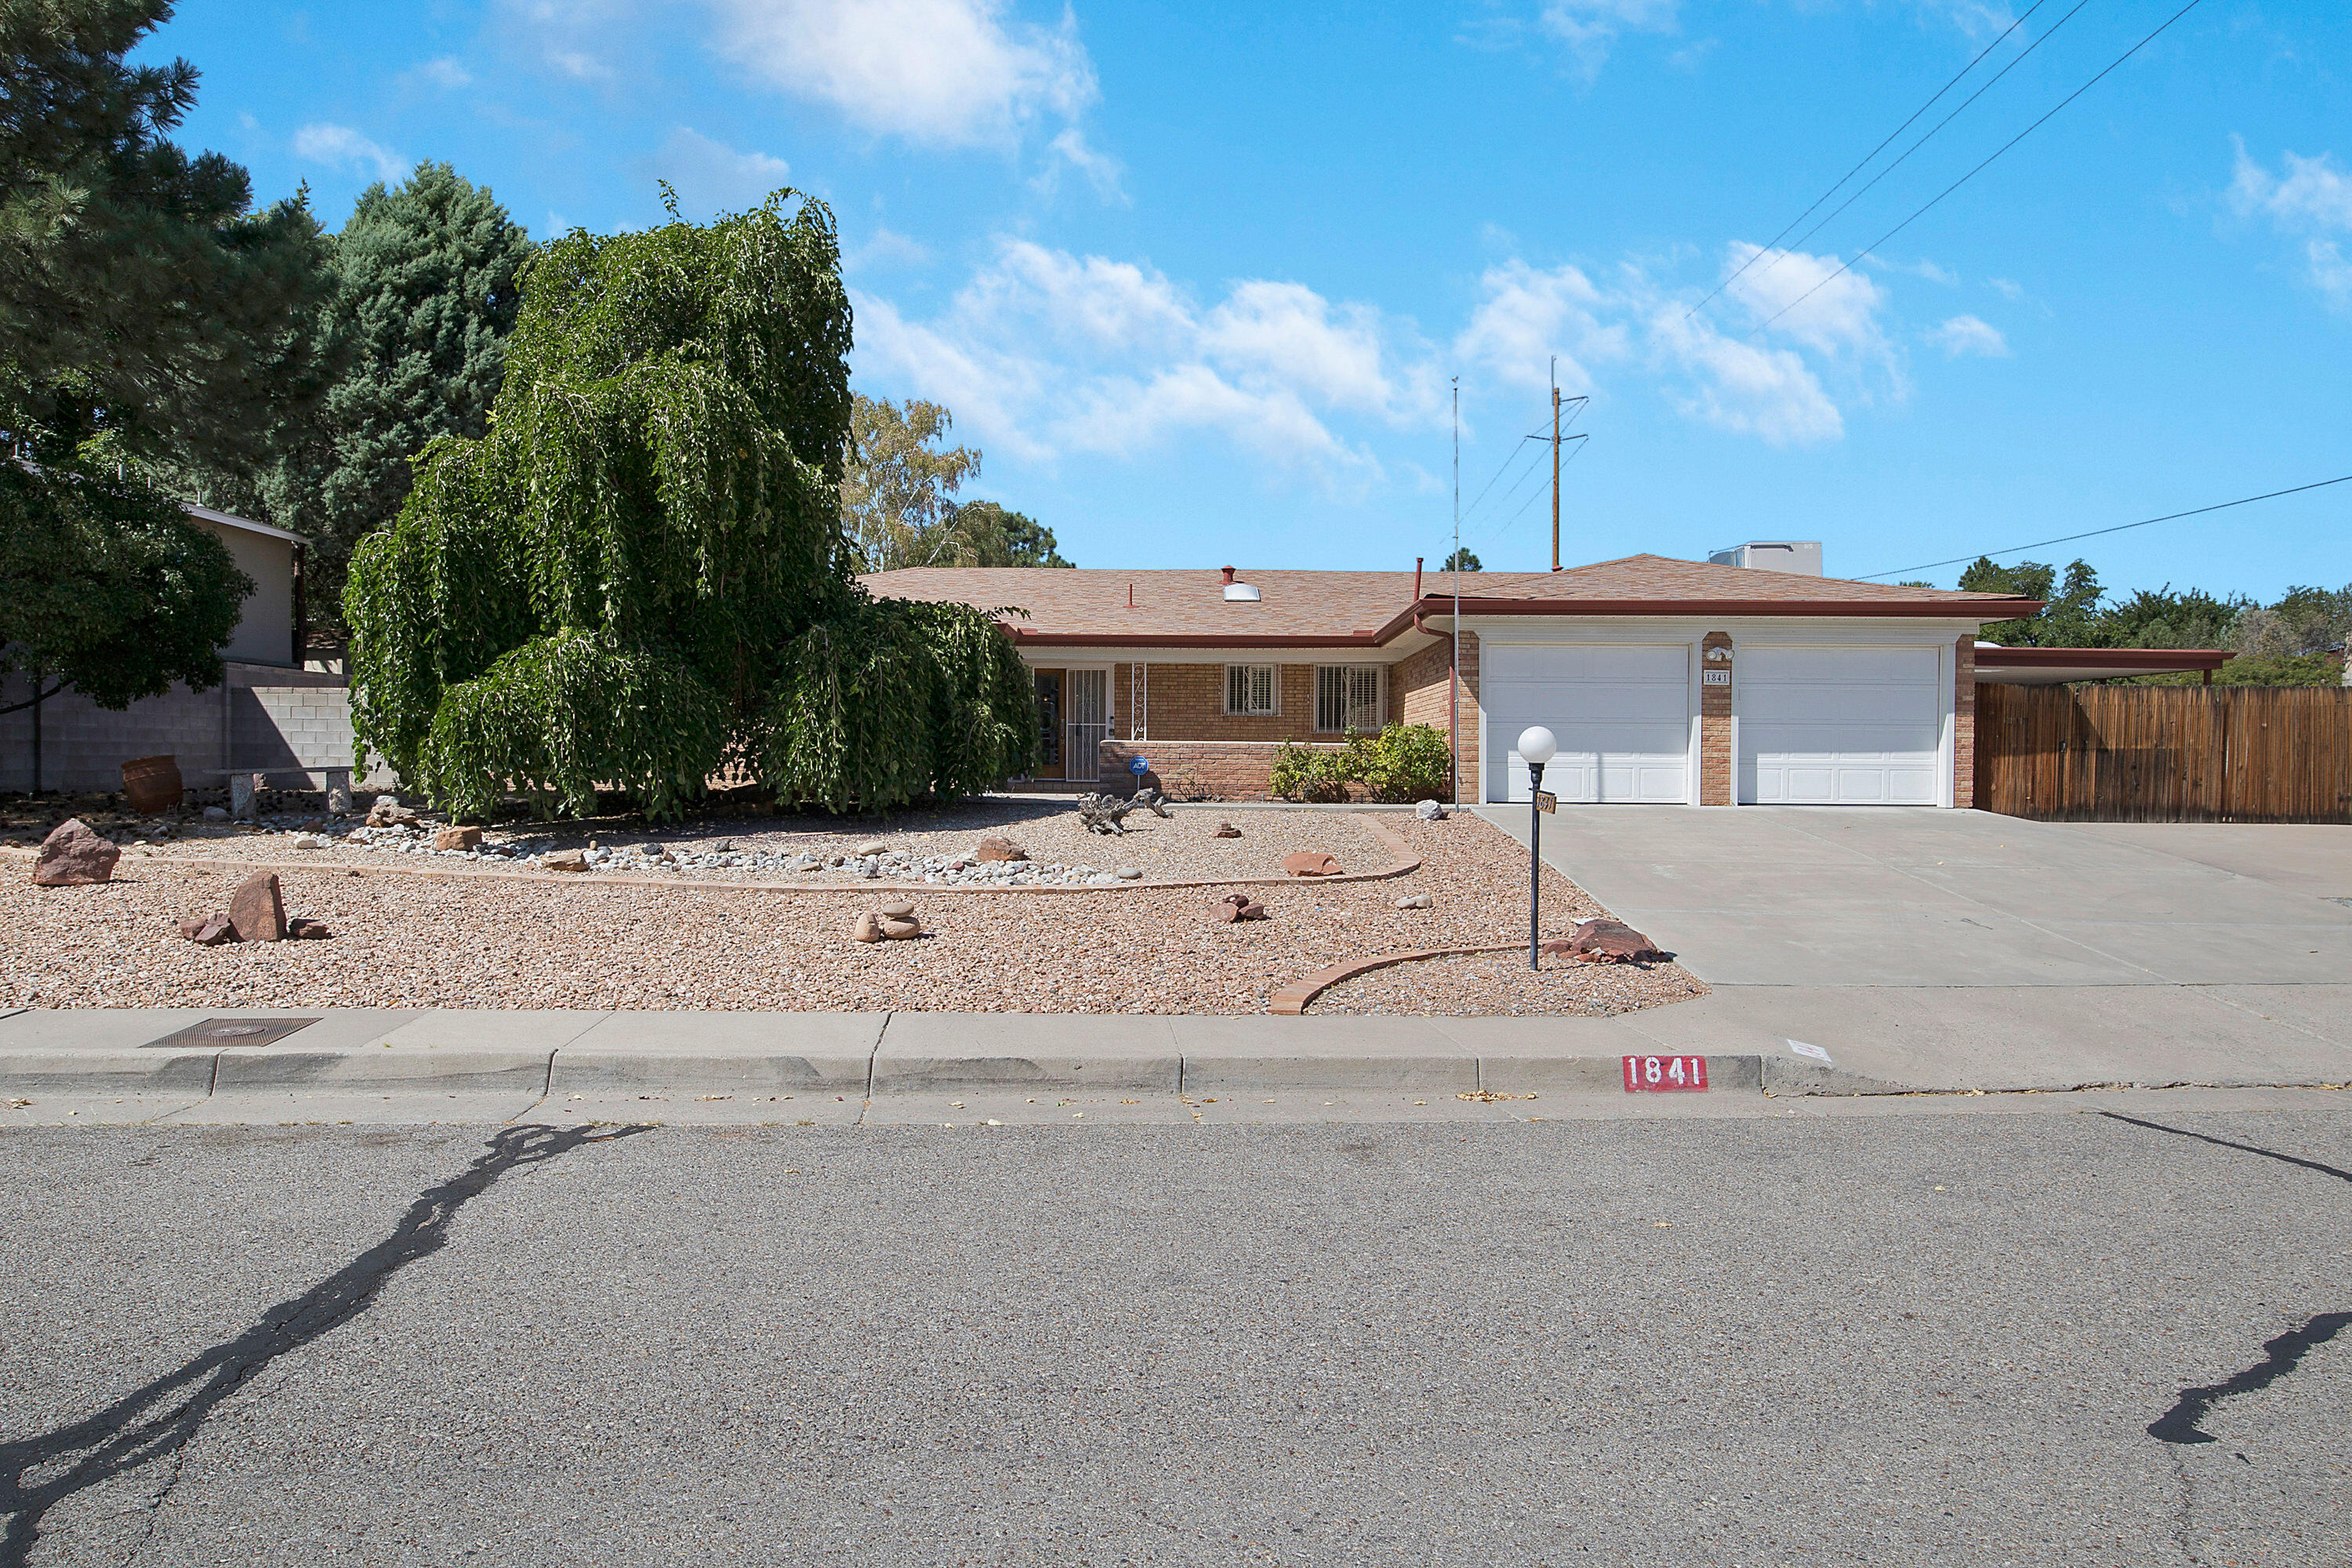 Sprawling 3 bedroom home on oversized corner lot, close to amenities and easy access to I-40. Welcoming open courtyard with beautiful mountain views. Galley-style kitchen with built in dual ovens, cooktop stove, office area, and pass through bar. Large formal living room with beam ceilings and brick fireplace. Formal dining room opens to the expansive family room with outdoor access. Primary suite boasts 5 piece master bath, jet tub, separate shower, dual sinks and closets. Gorgeous, private backyard featuring covered patio with ceiling fan and sun shades, lush lawn, trees, extra storage building/workshop with electricity and heat, and additional RV parking and carport. Move in ready!